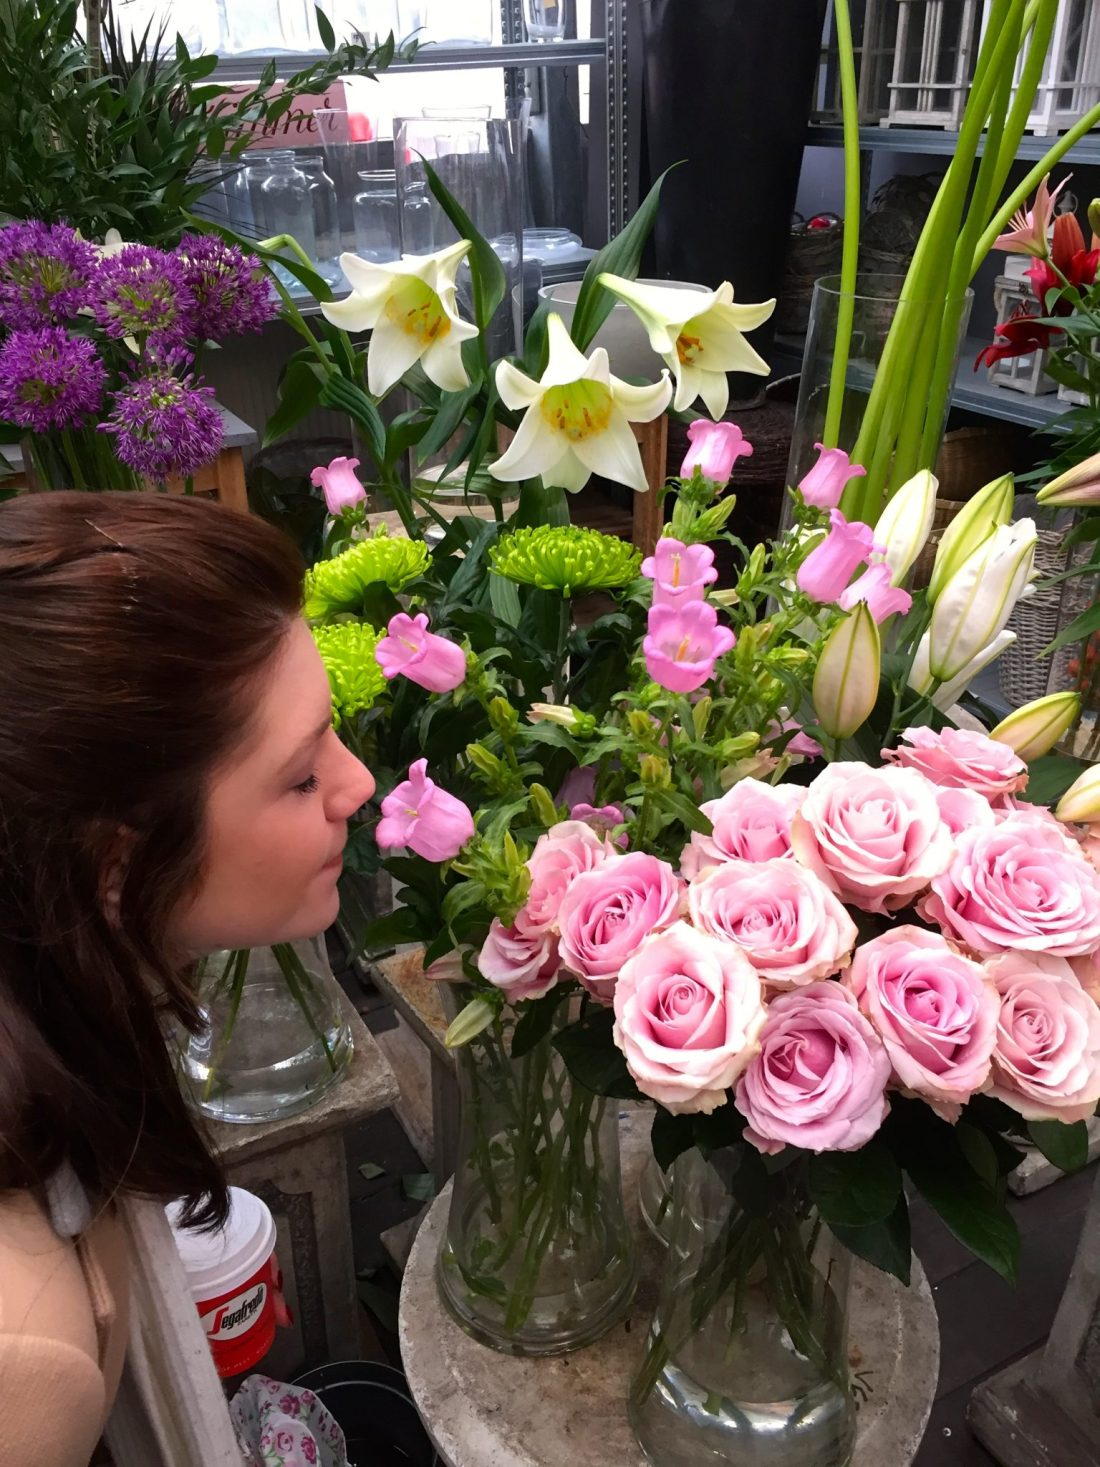 Smelling the flowers in Bloemenmarkt, Amsterdam